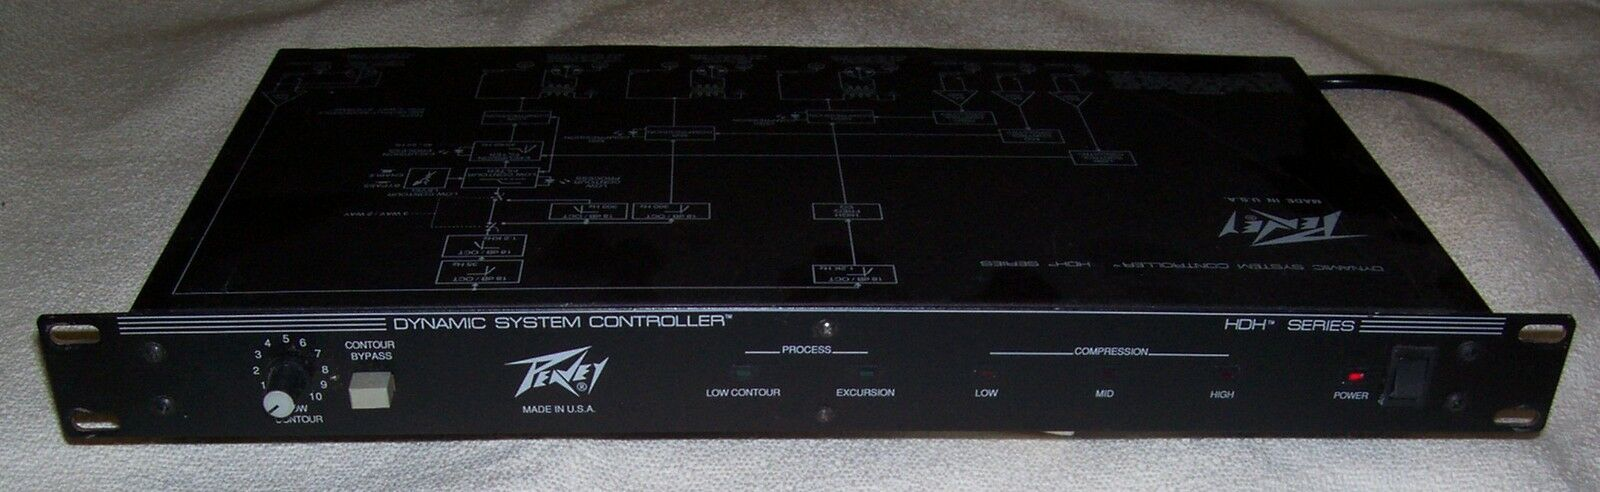 Peavey HDH series Dynamic System Controller (Processore Compressore Crossover)